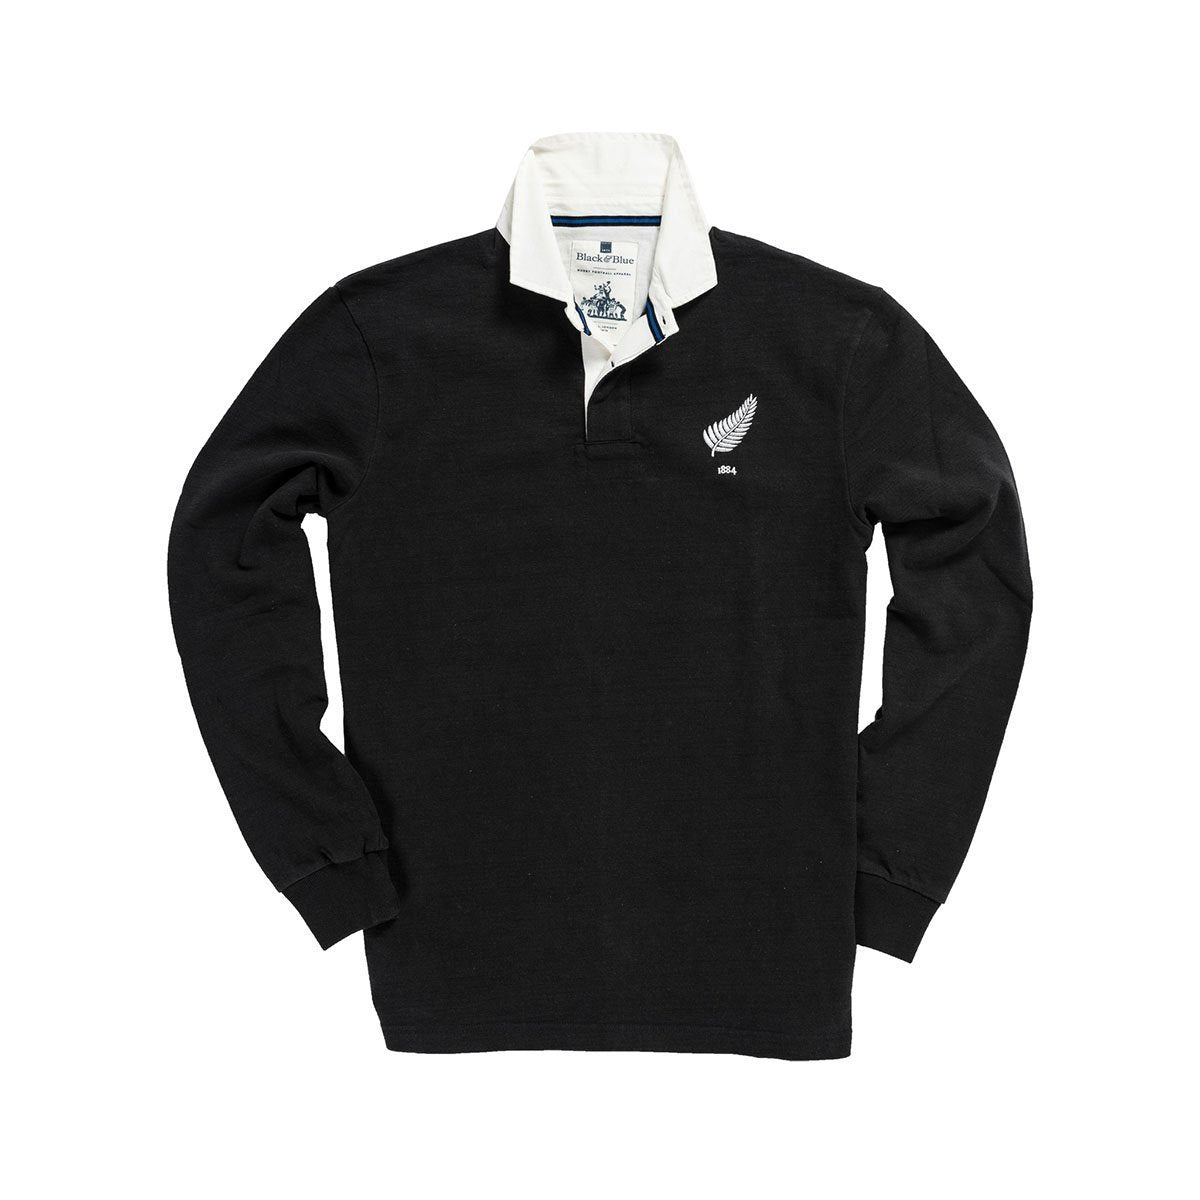 1IN/NZXS, Black & Blue 1871, New Zealand 1884 Rugby Shirt, Black, Vintage, Classic Rugby Shirt